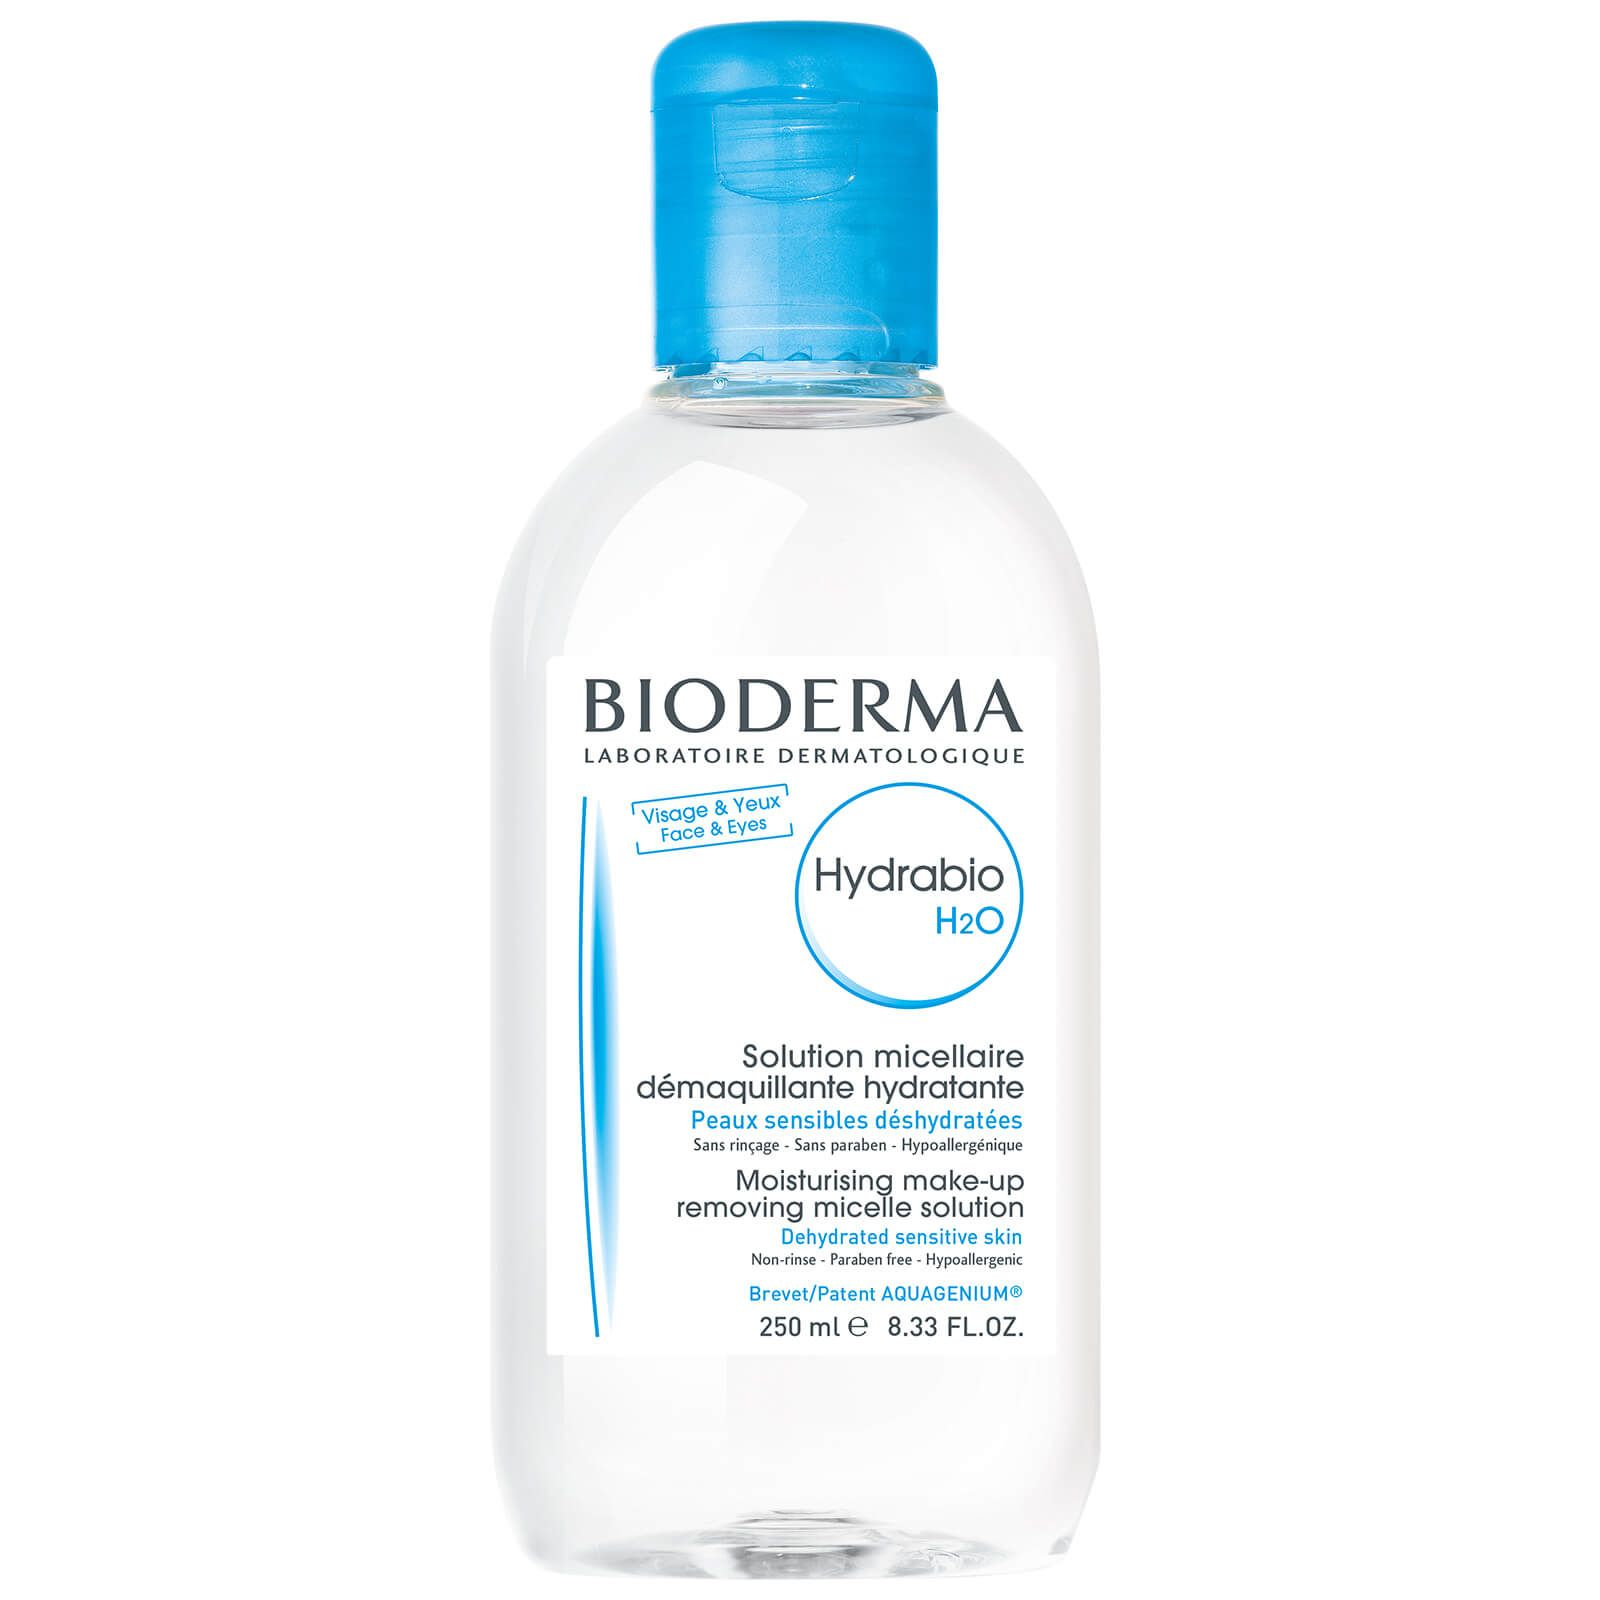 My Celebrity Life – Bioderma Hydrabio H2O Micelle Solution